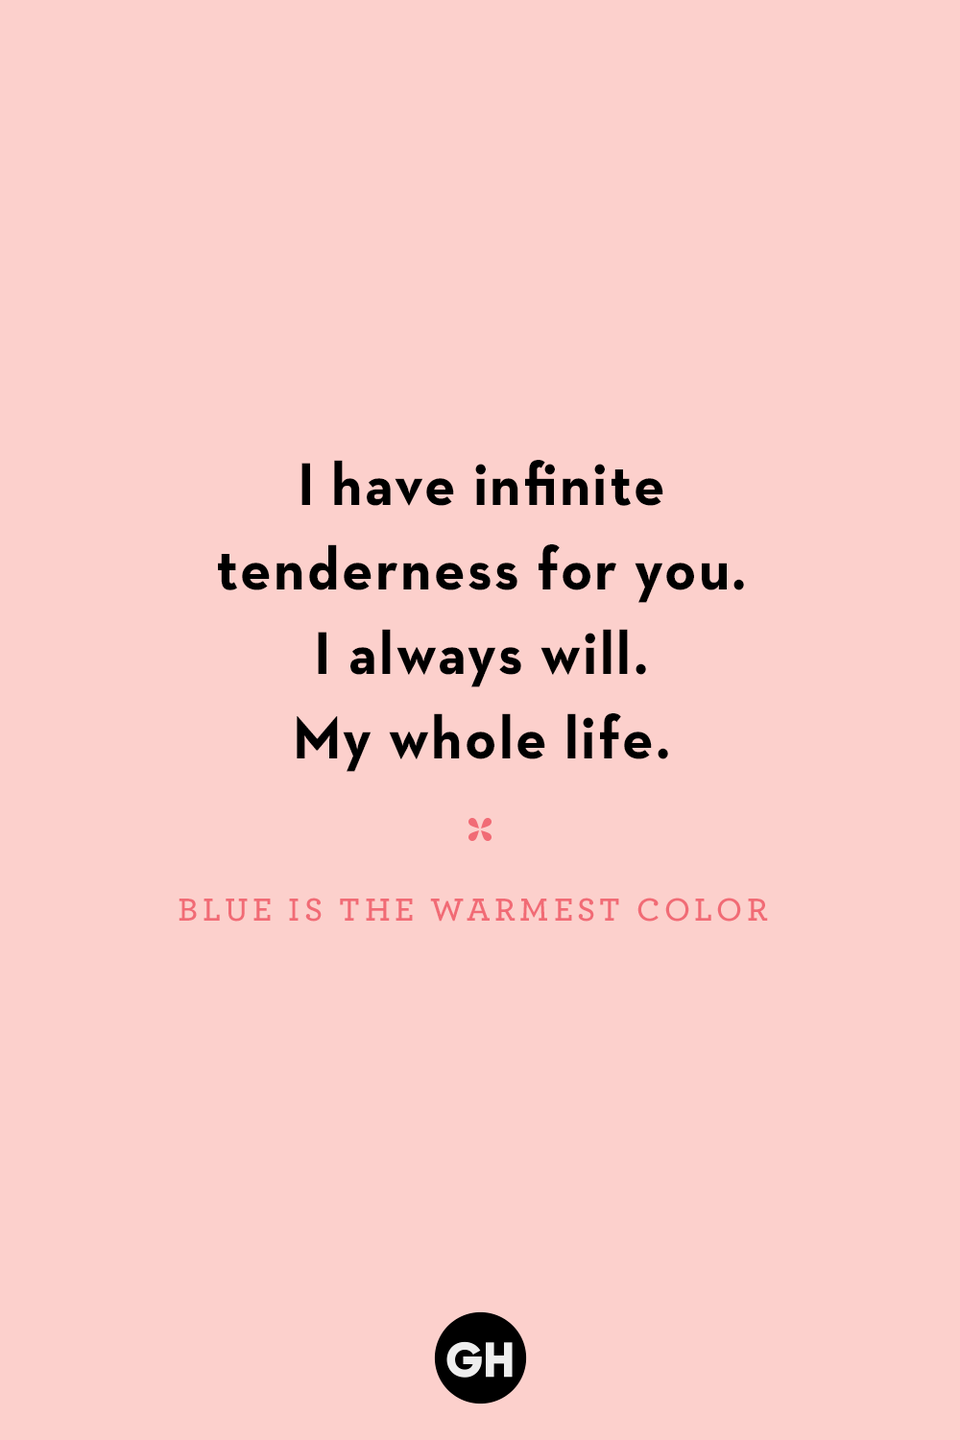 <p>I have infinite tenderness for you. I always will. My whole life.</p>